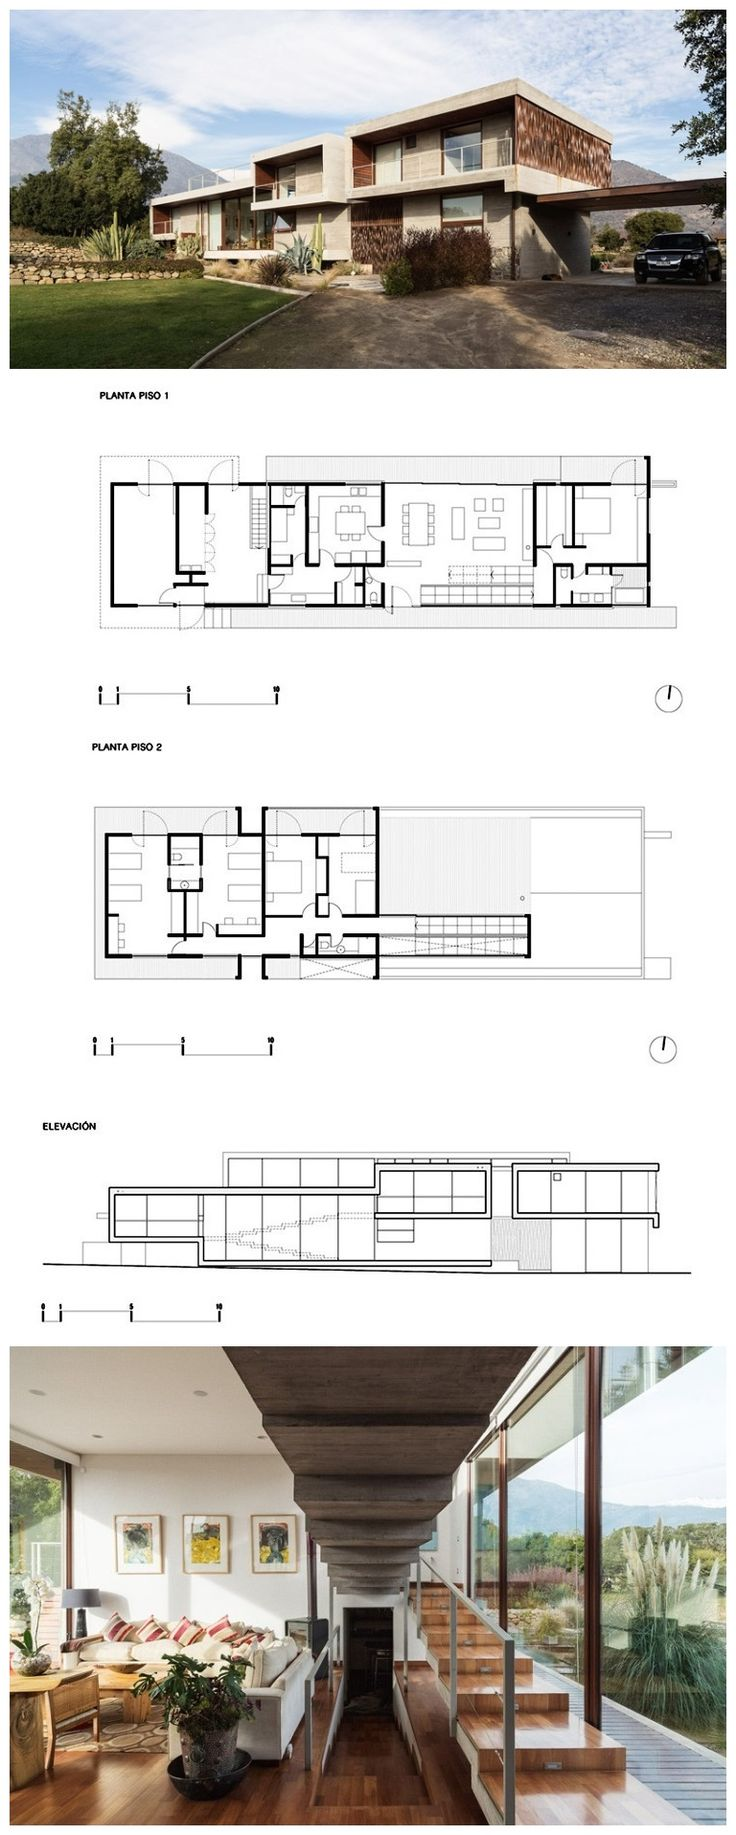 335 best f l o o r p l a n s images on pinterest architecture corredor house by chauriye stager architects